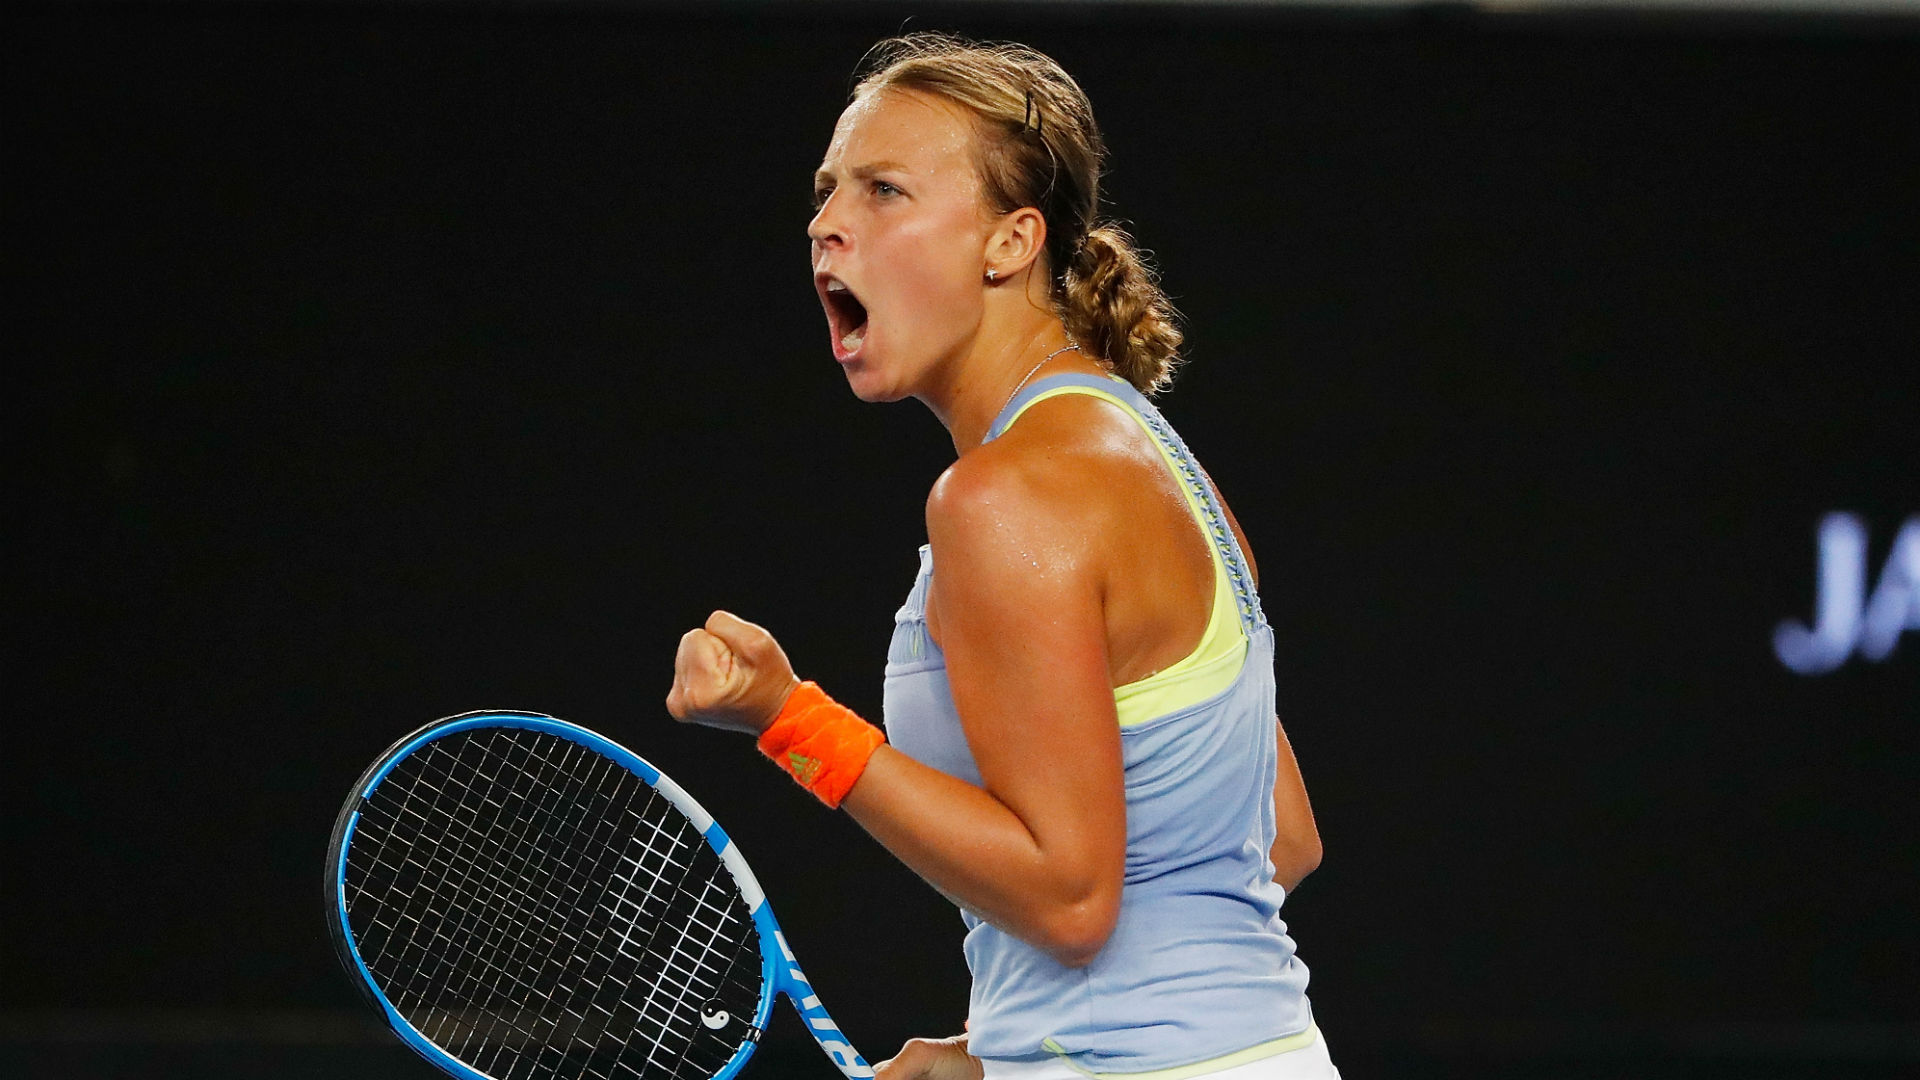 Australia Open: Ostapenko bows out, Wozniacki sails into pre-quarters